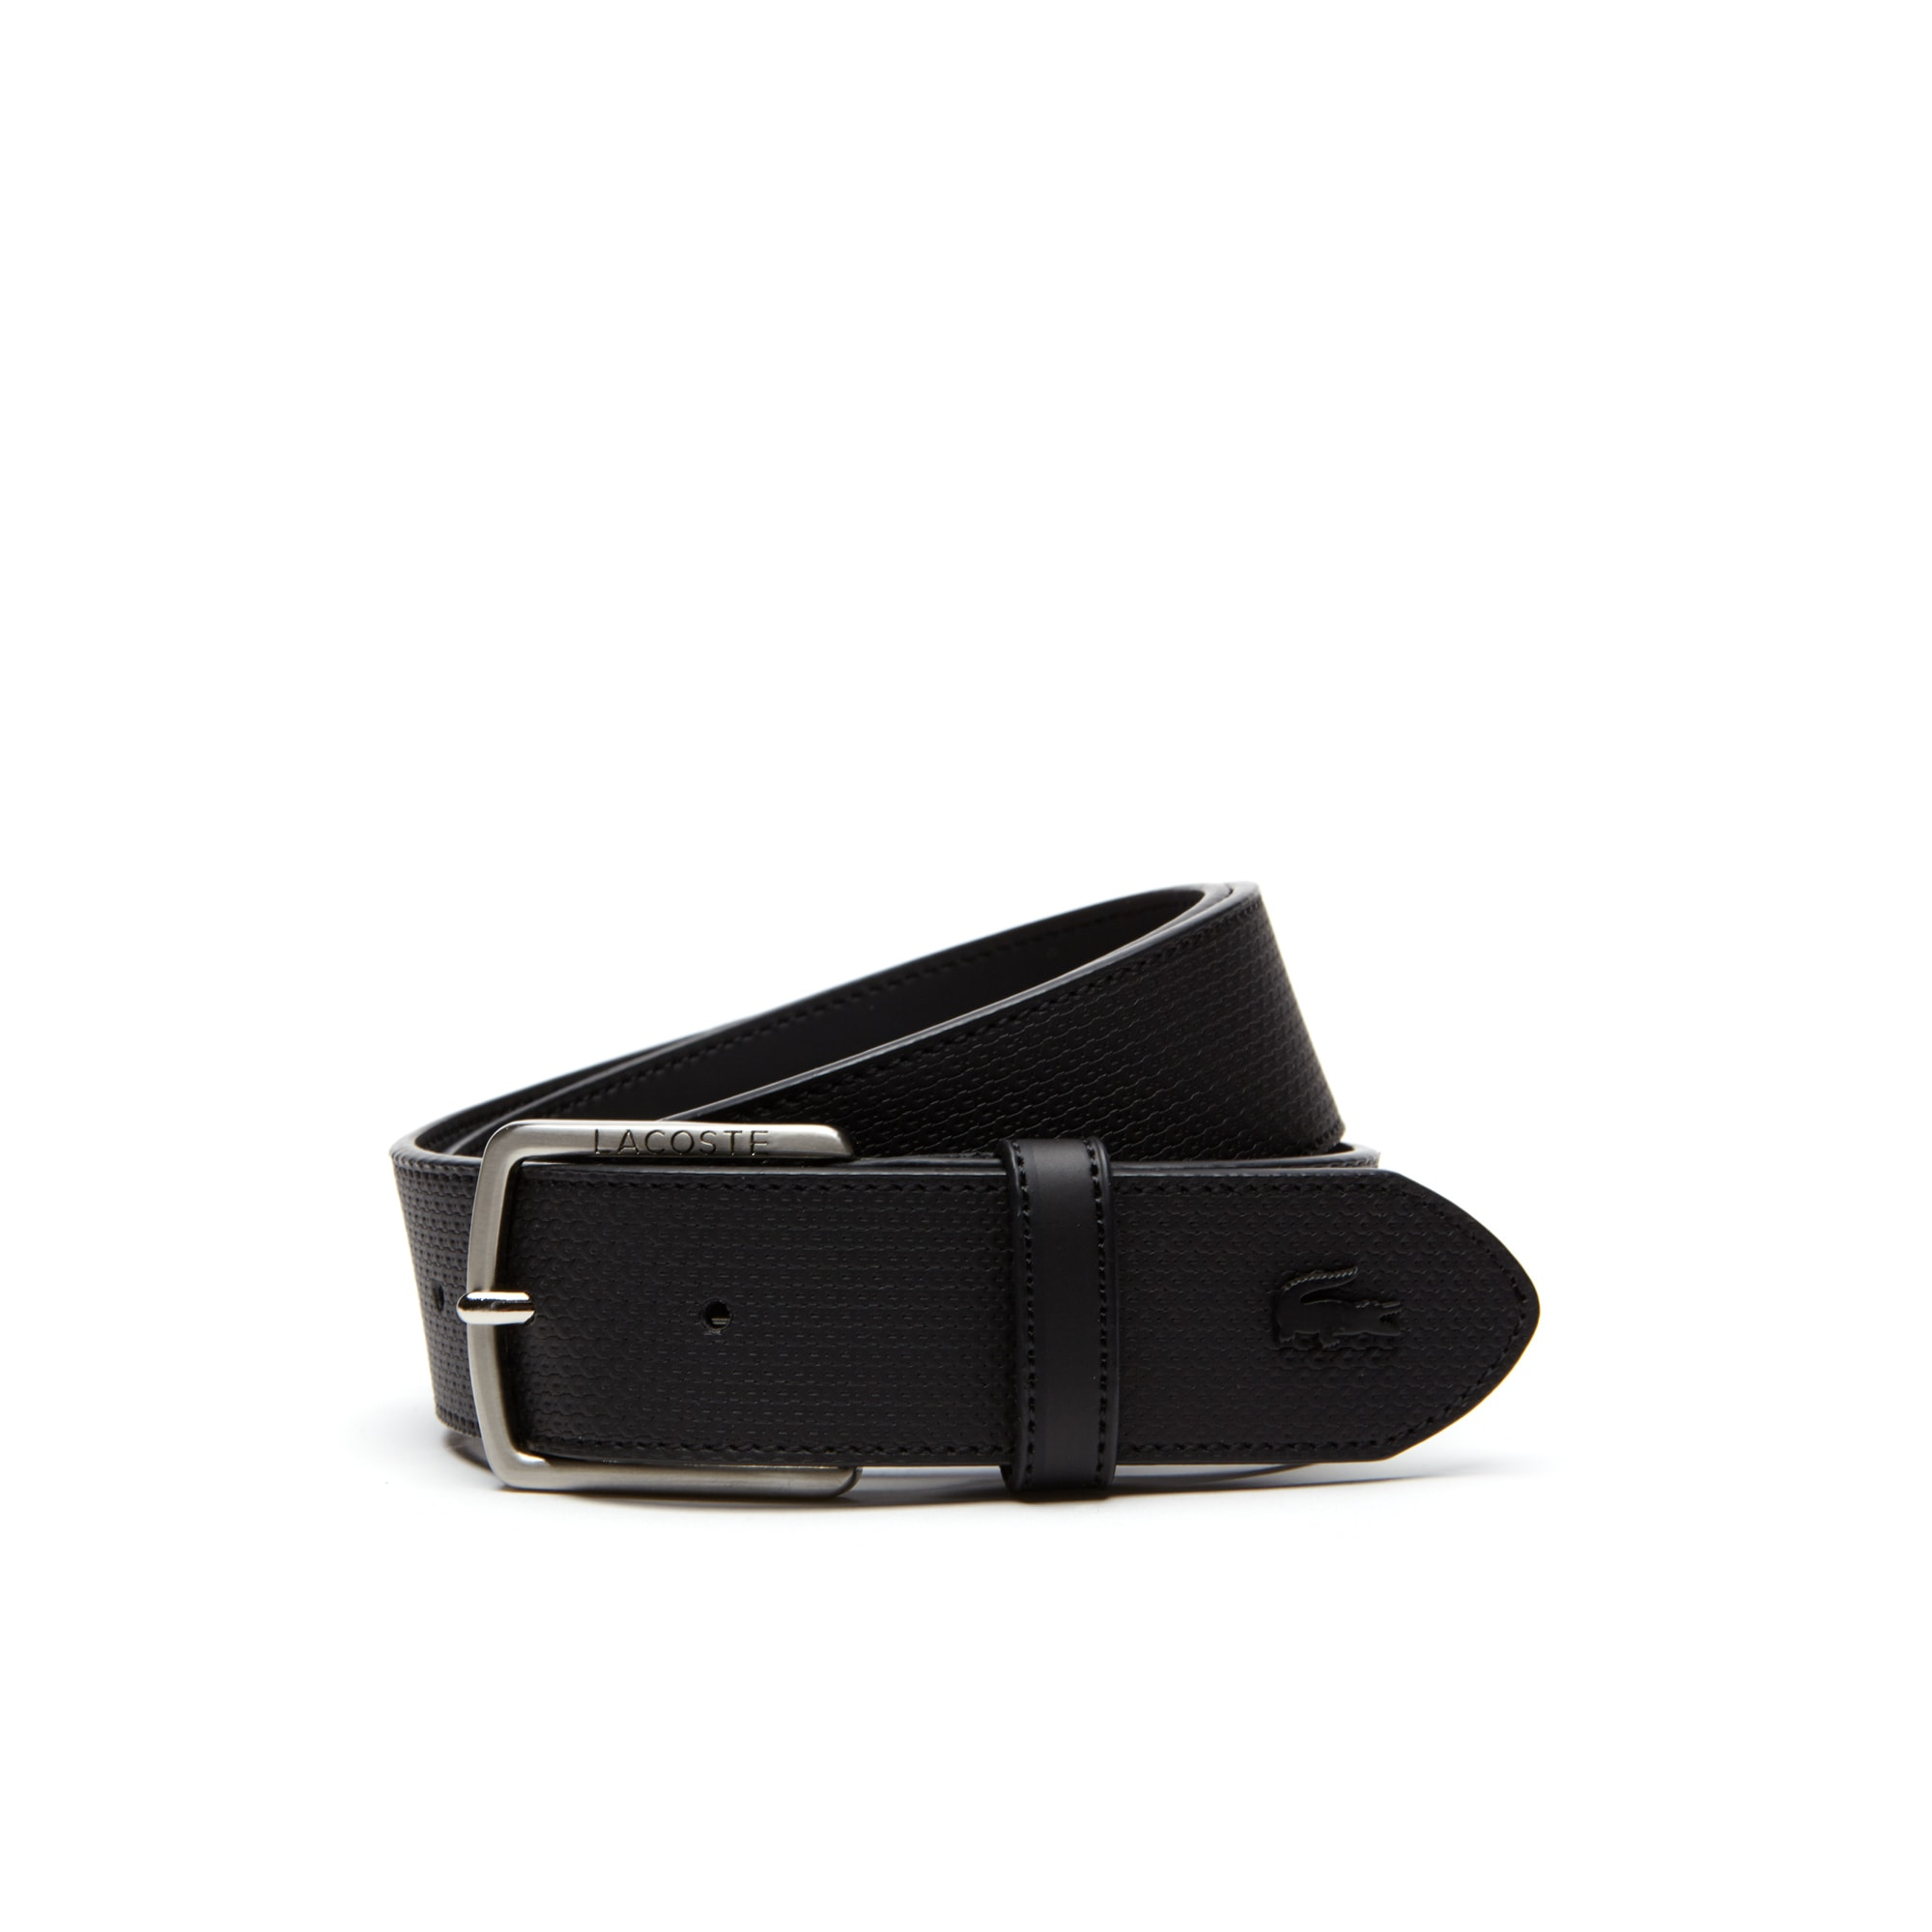 Men's Chantaco Piqué Leather Belt with Tongue Buckle